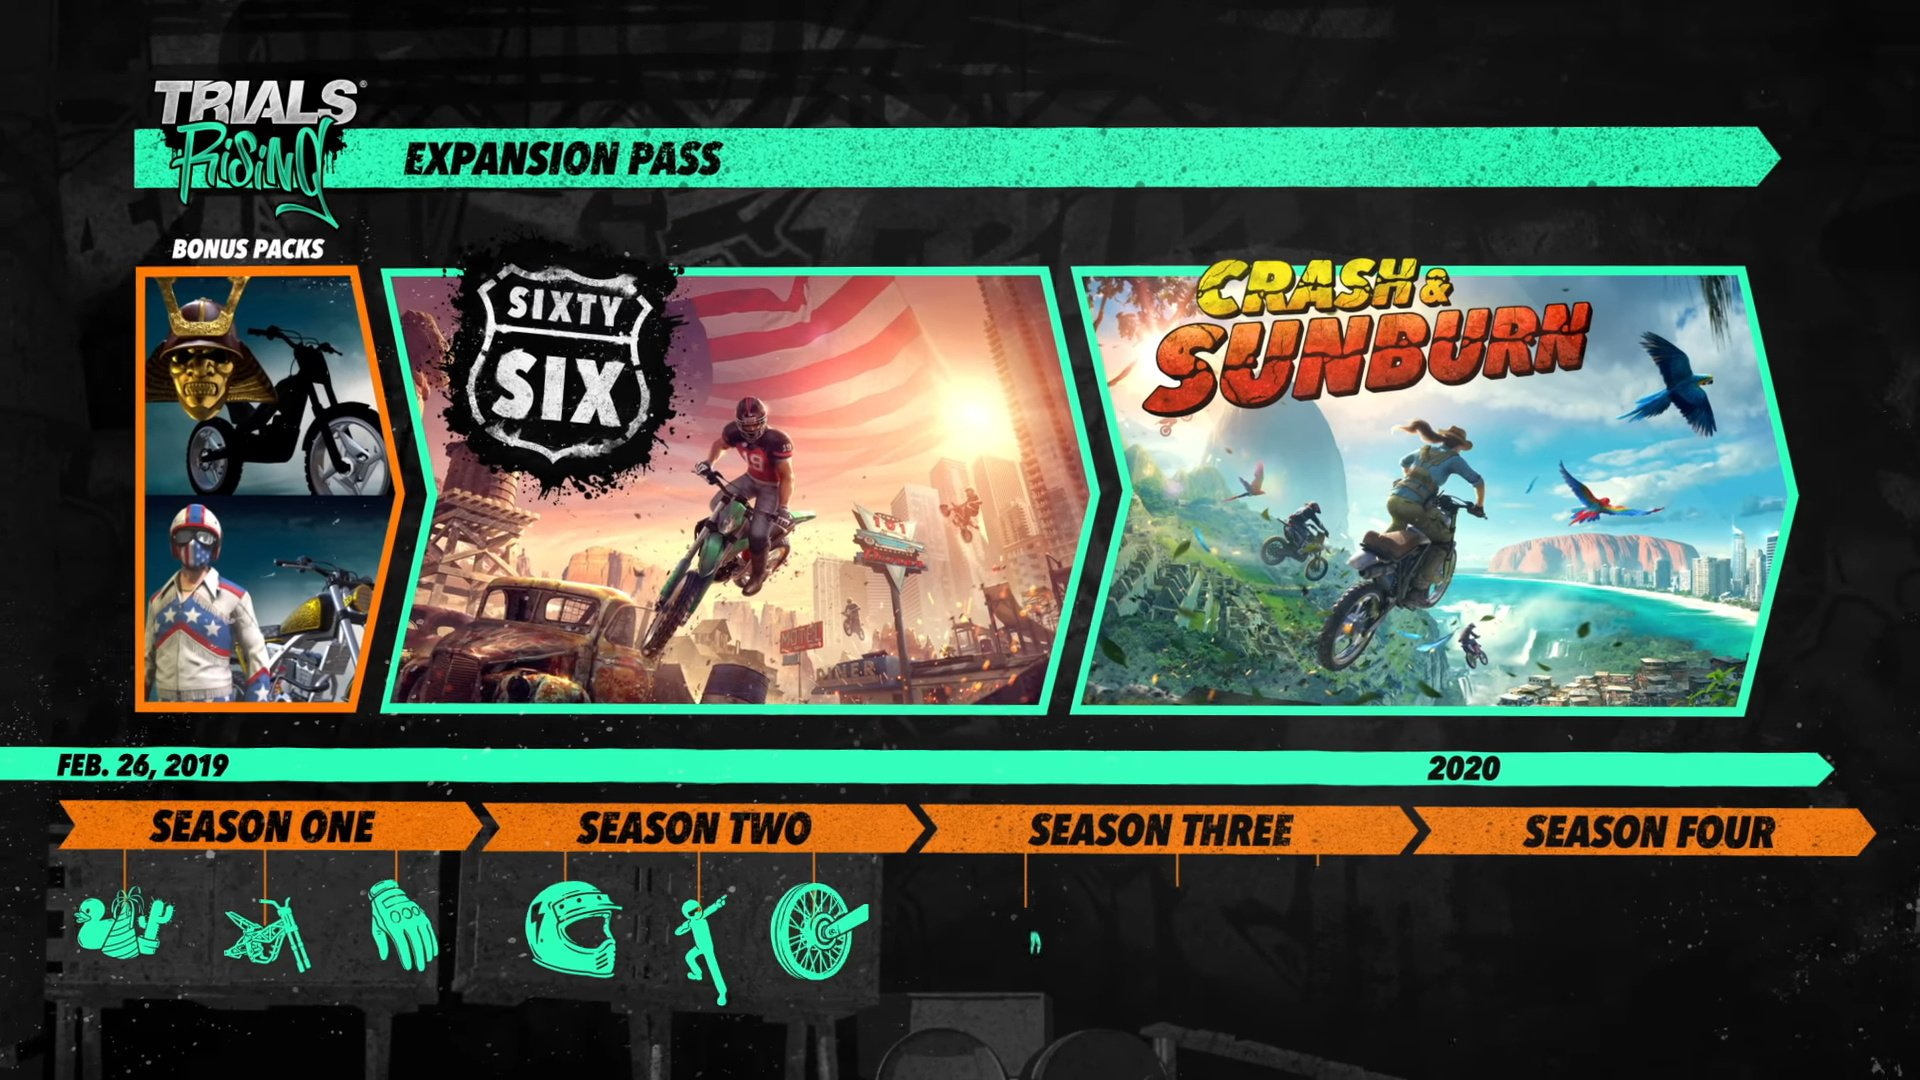 Ubisoft Outlines Extreme Post-Launch Plans For Trials Rising